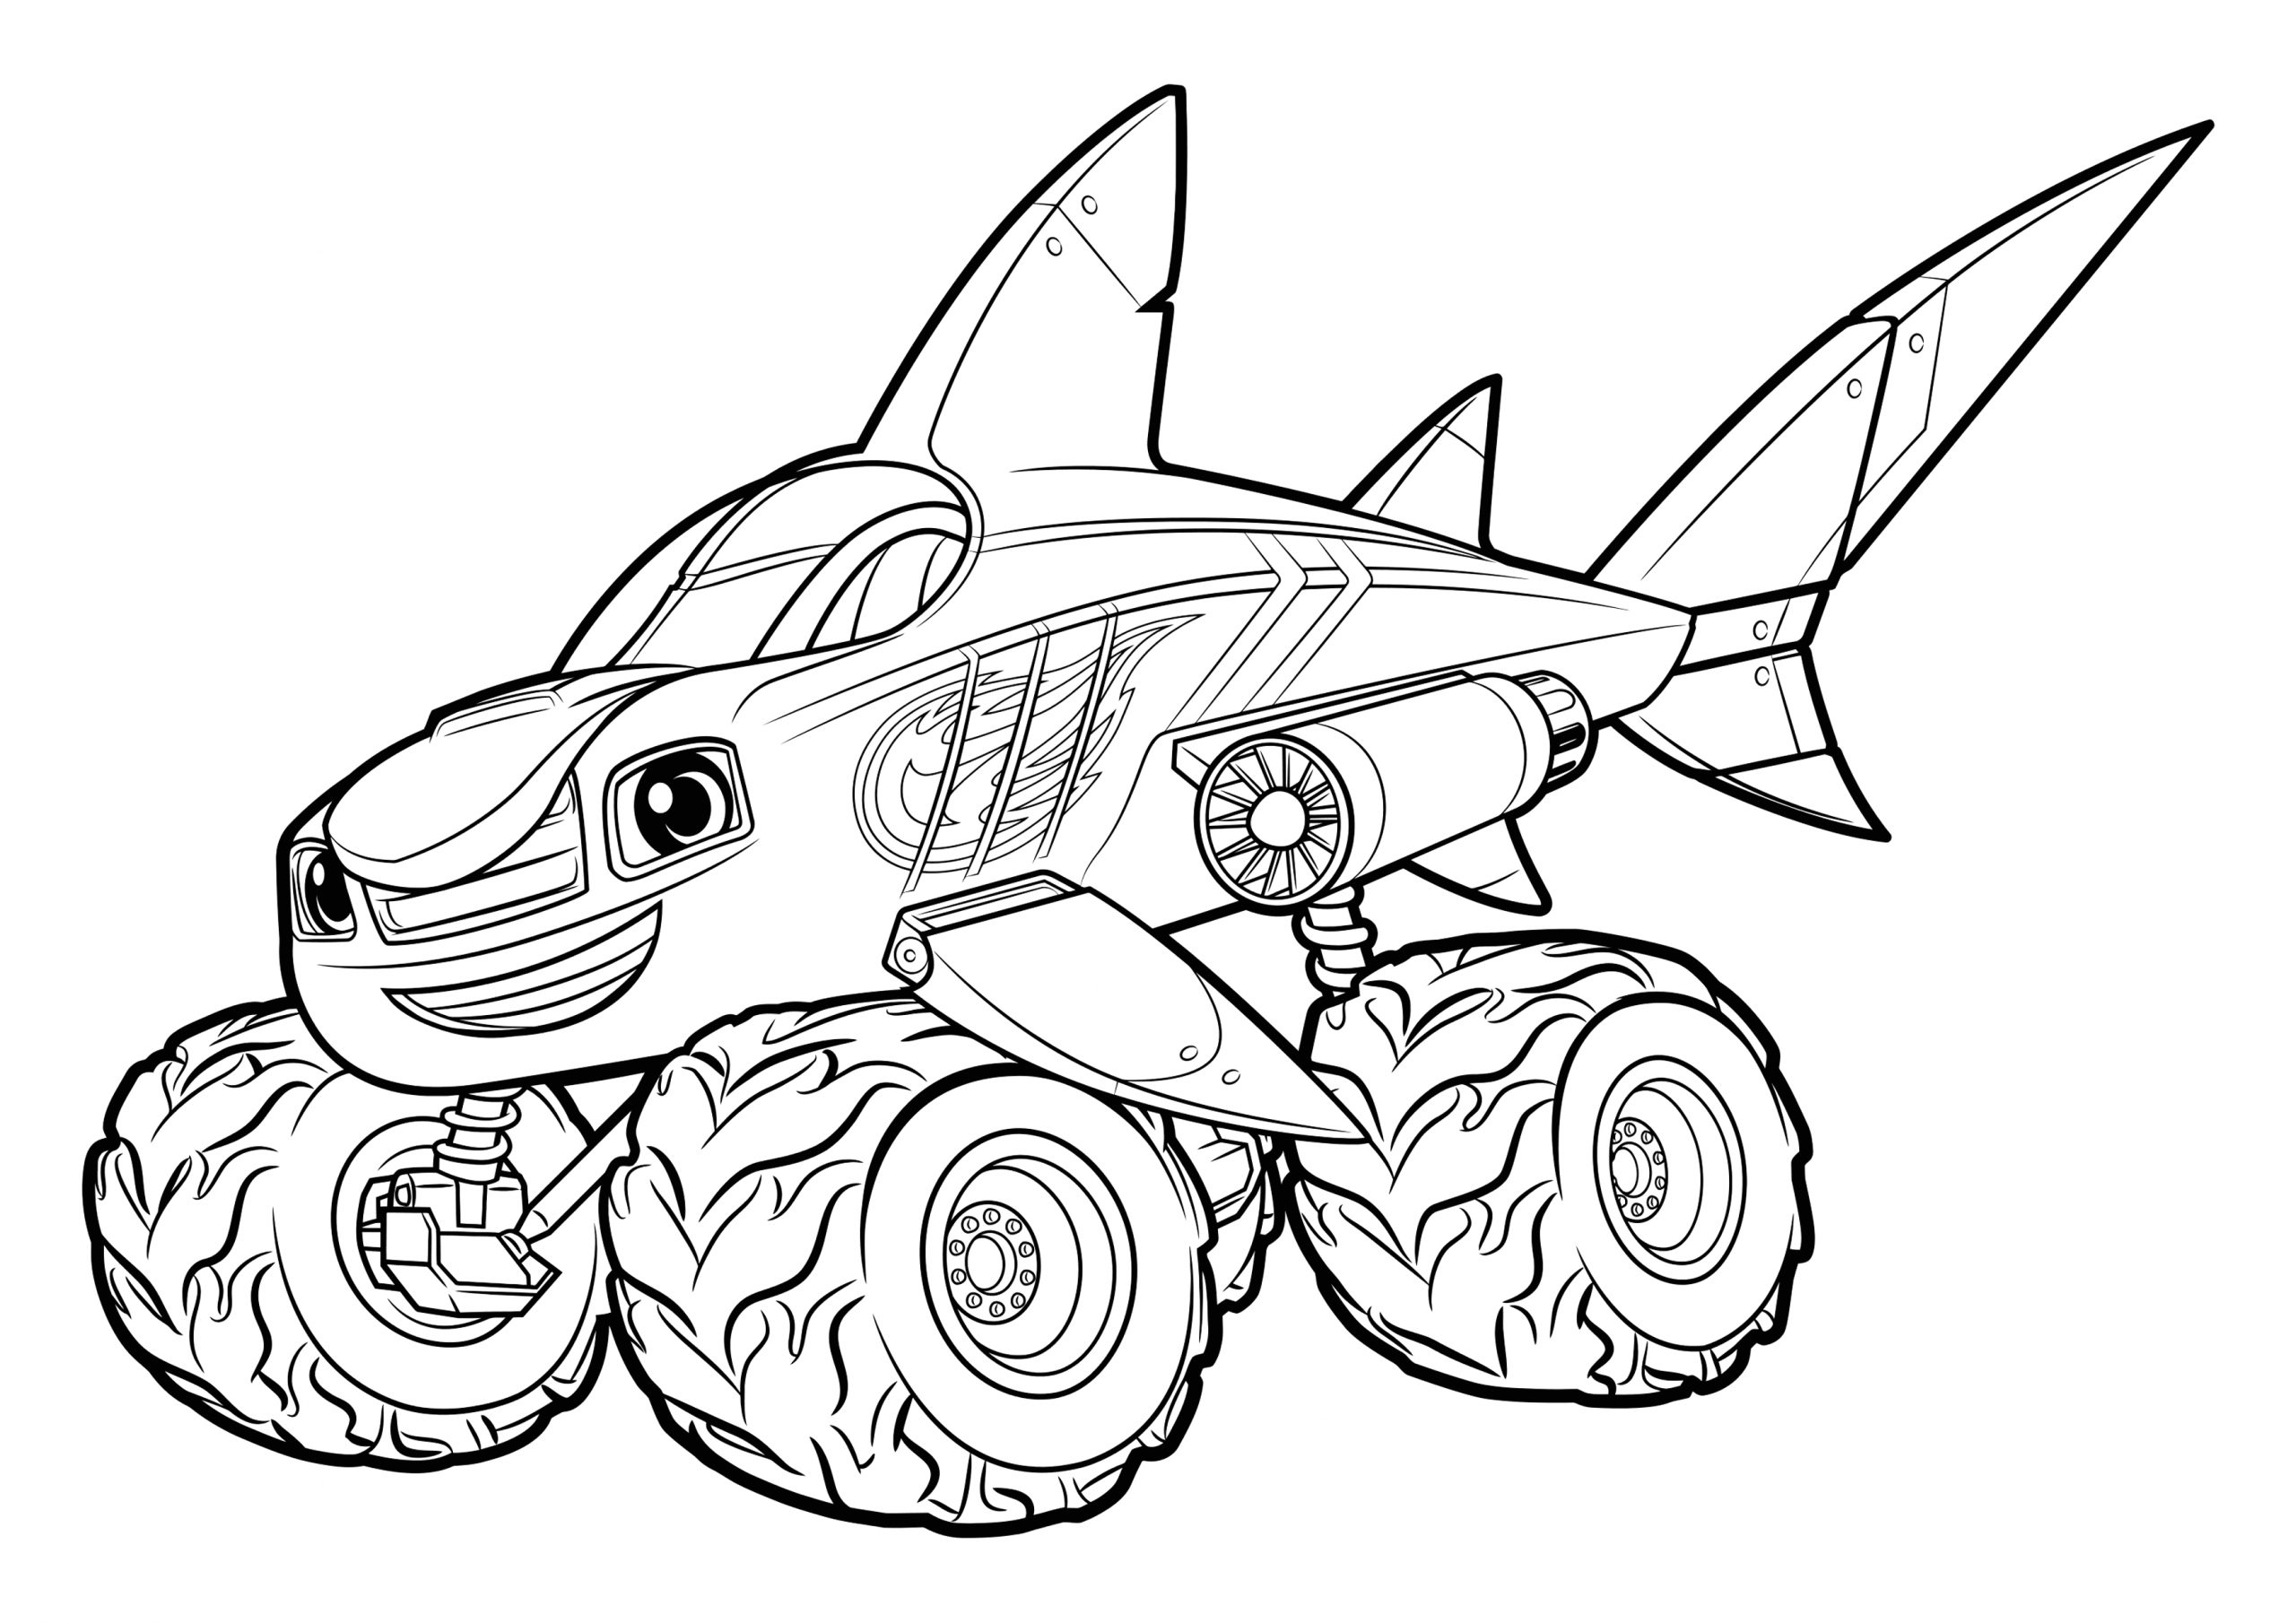 Free Blaze and the Monster Machines Coloring Pages Blaze and the Monster Machines Blaze Shark Coloring